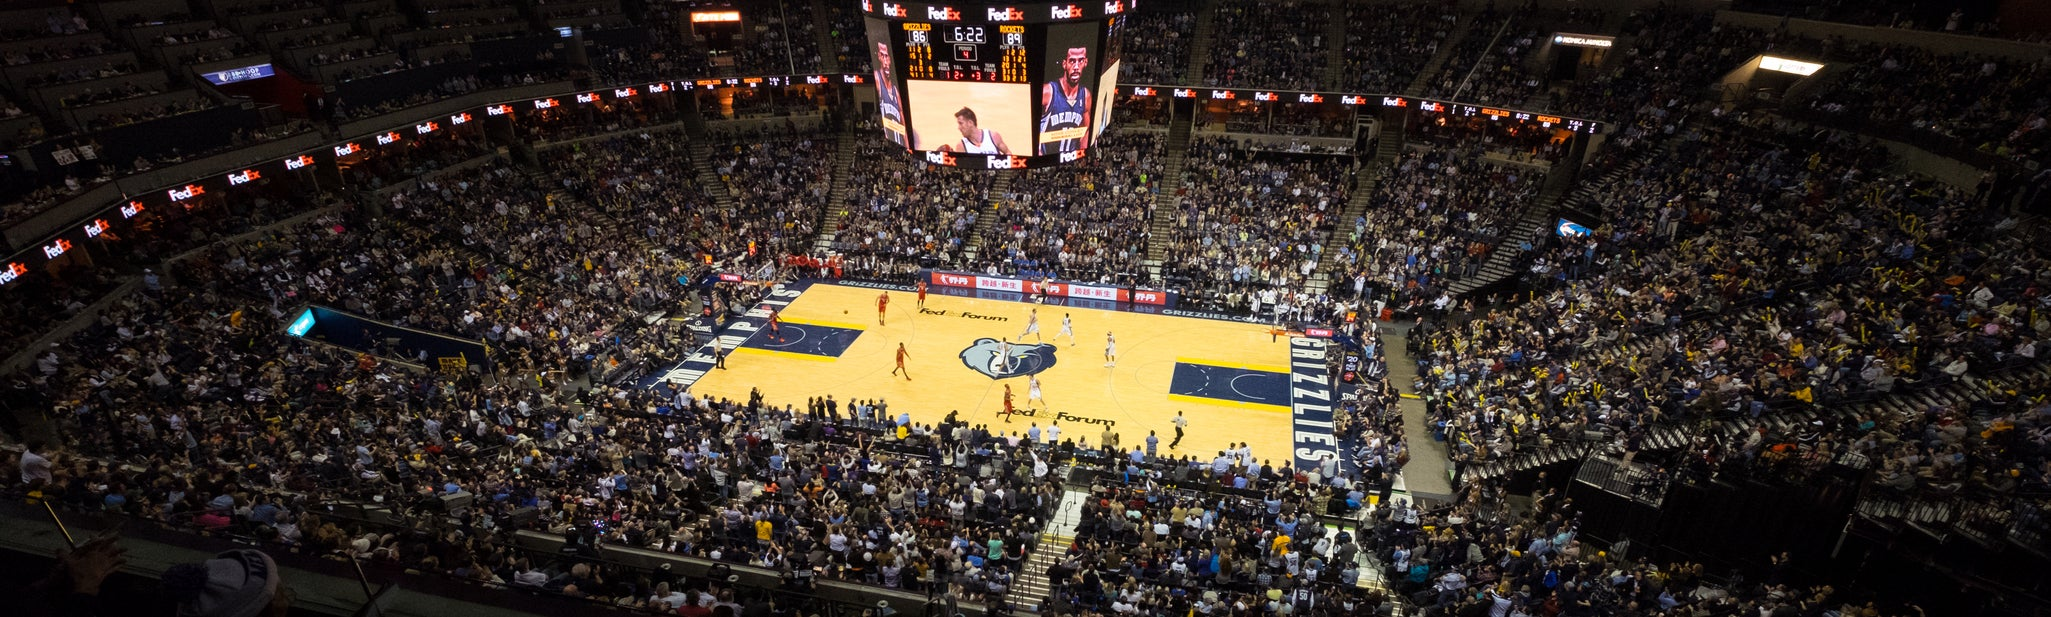 Seat view from Terrace Center